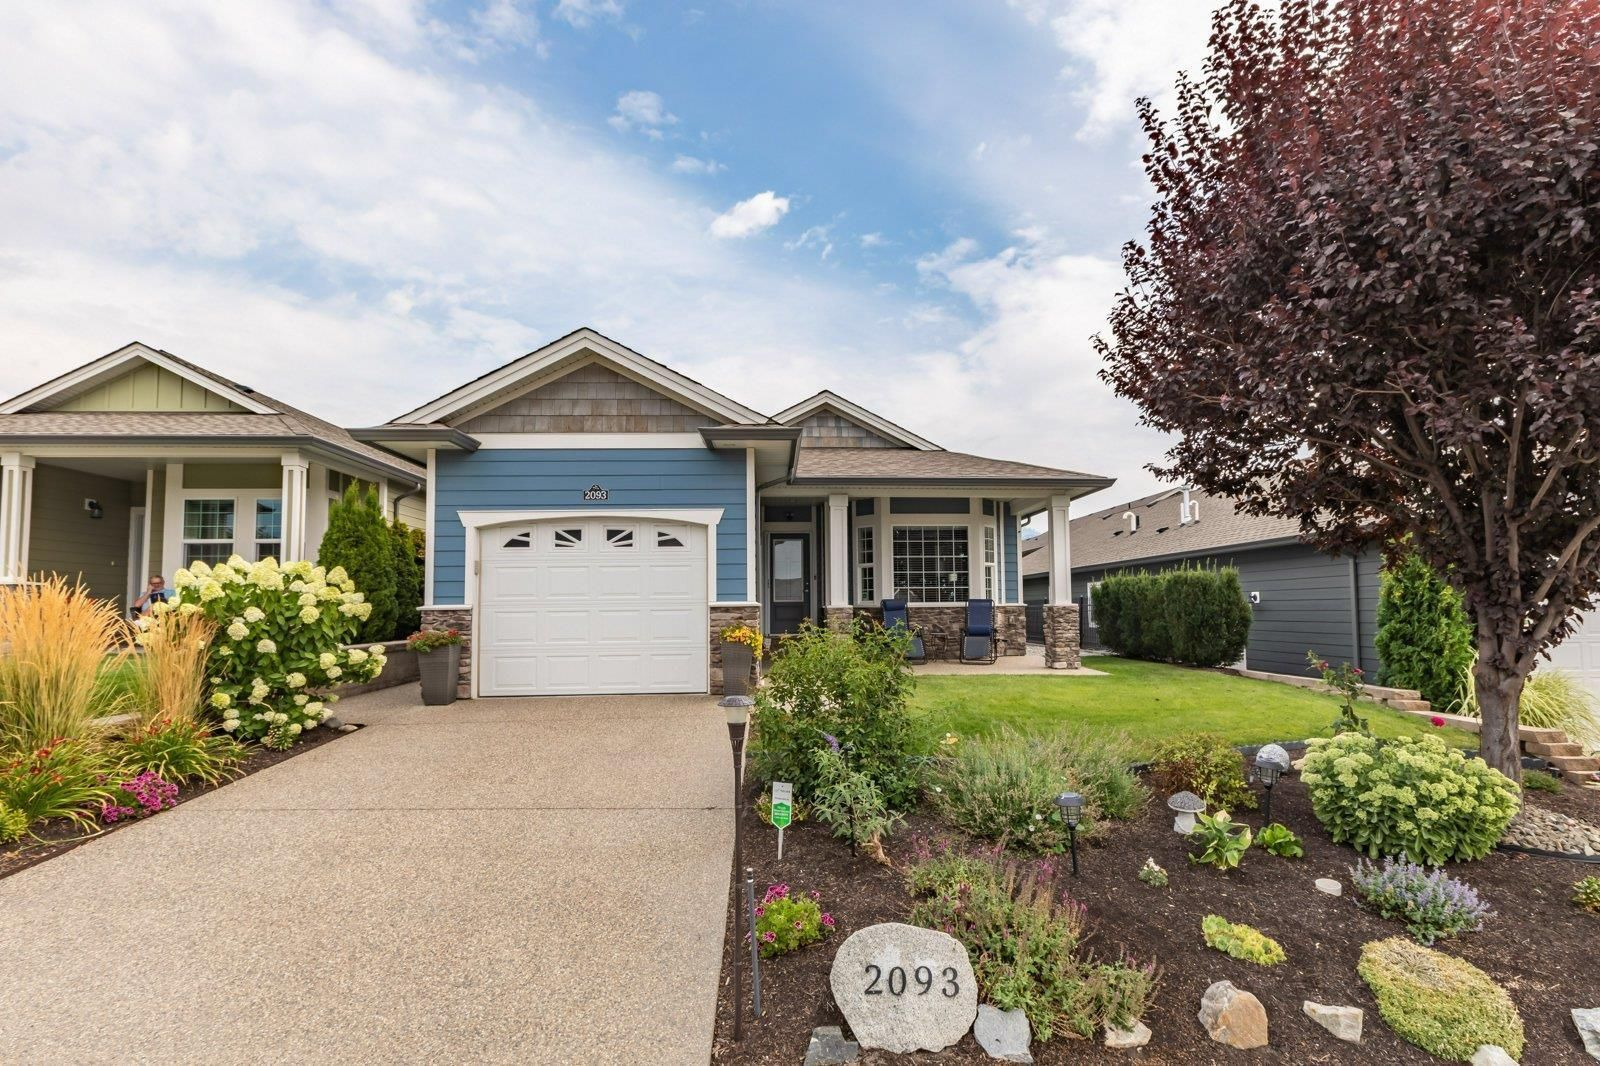 Main Photo: 2093 Acorn Crescent, in West Kelowna: House for sale : MLS®# 10240888